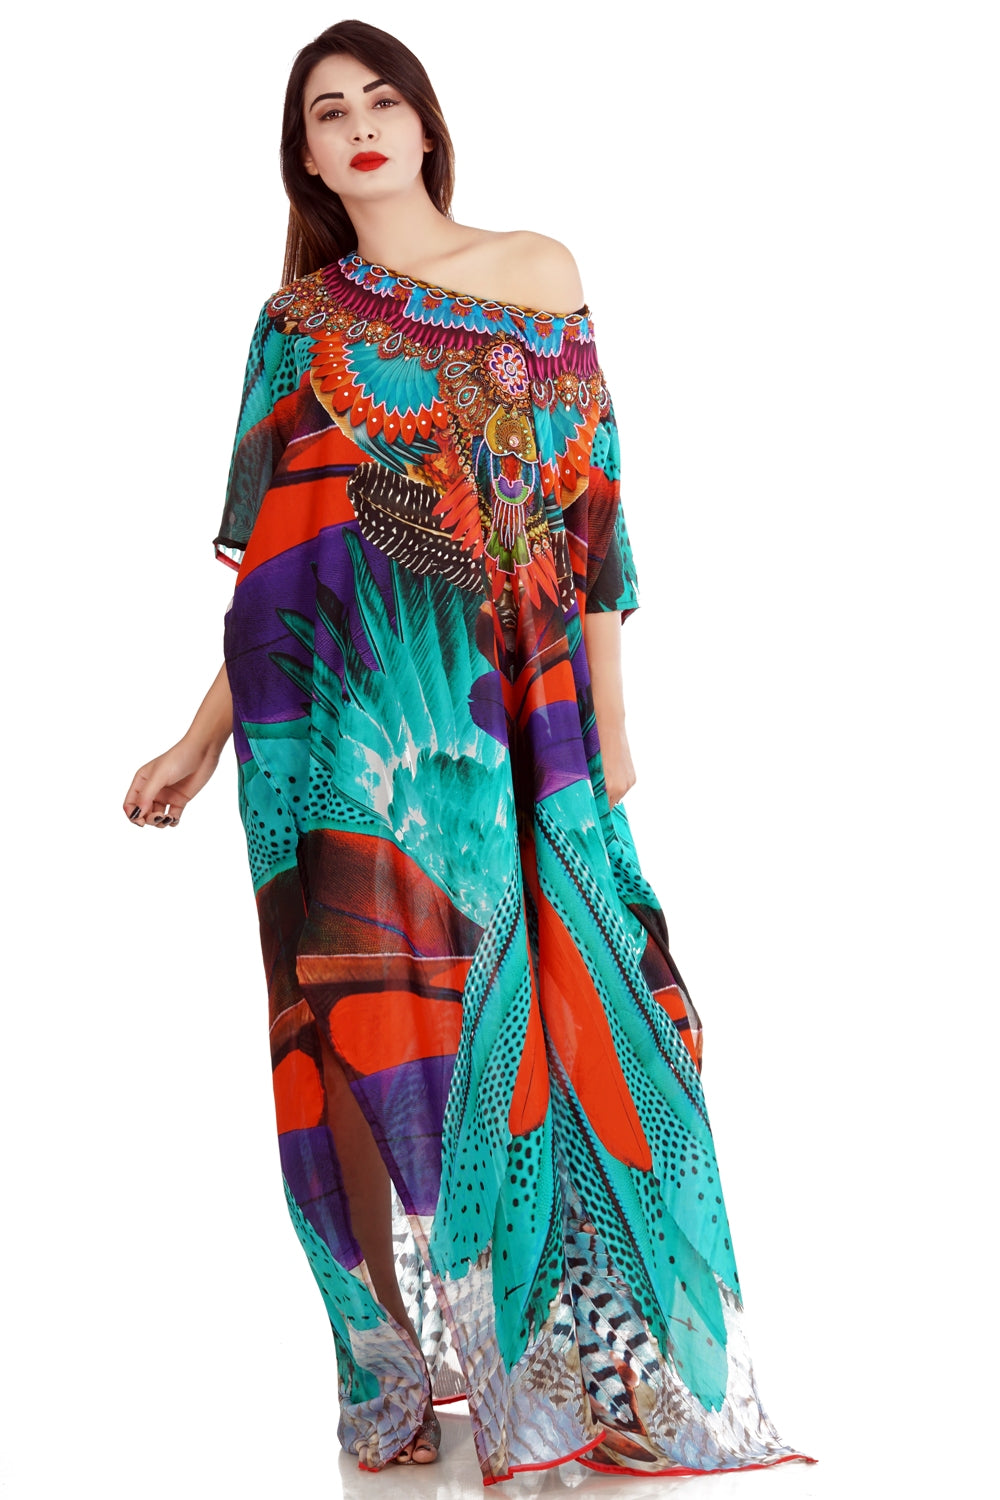 Exotic Feathers printed Silk Kaftan with charming elegiac print around neckline - Silk kaftan